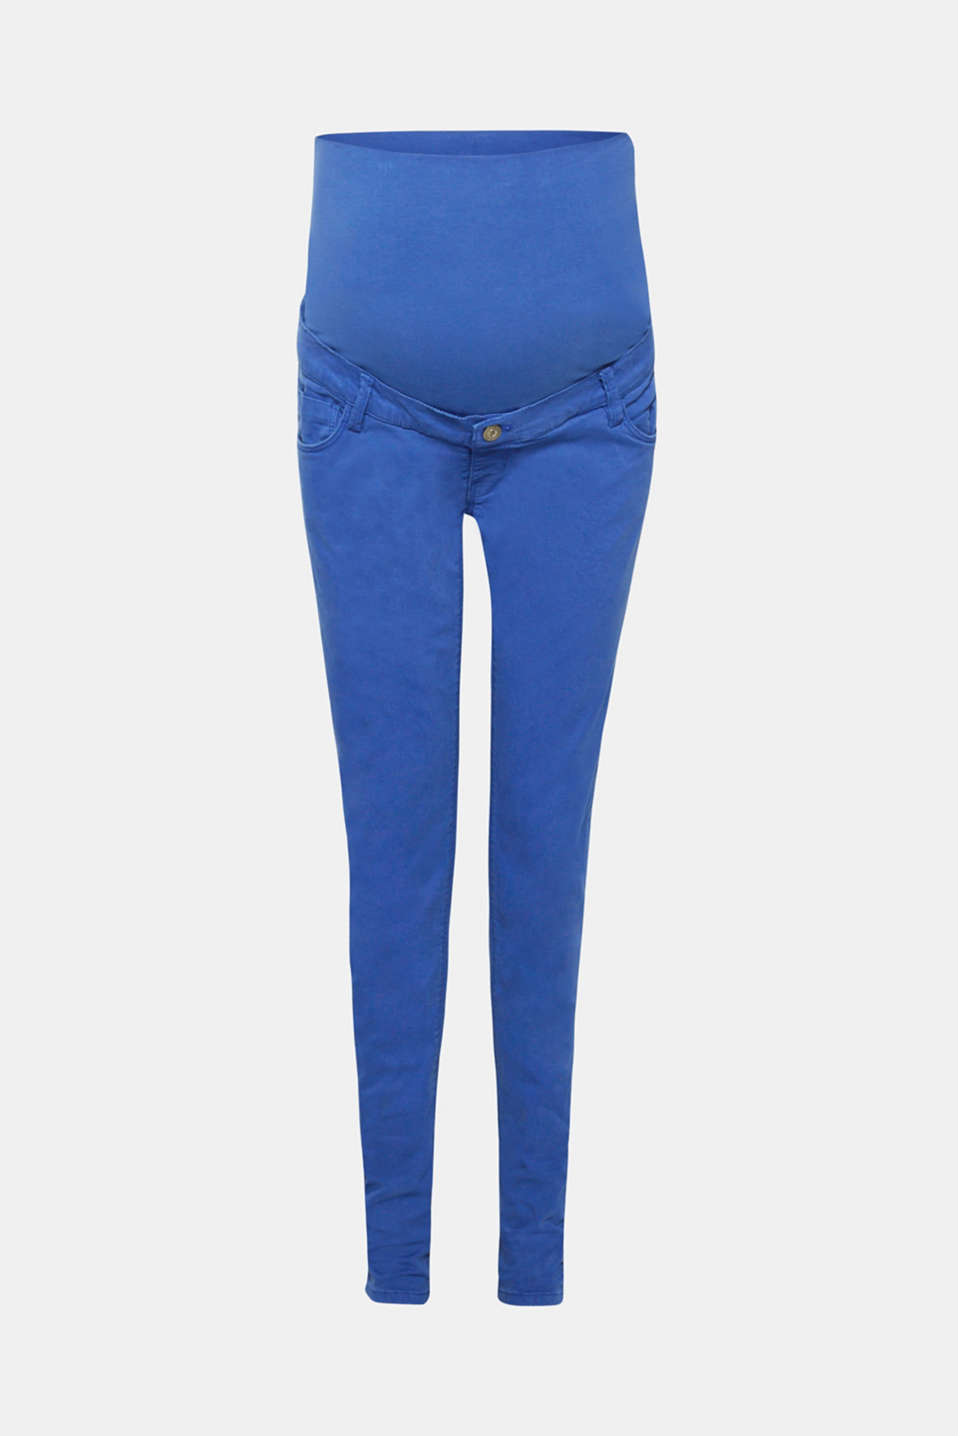 Denim goes for colour: with these stretch jeans in a trendy coloured style. The over-bump jersey waistband is super functional and super comfy!